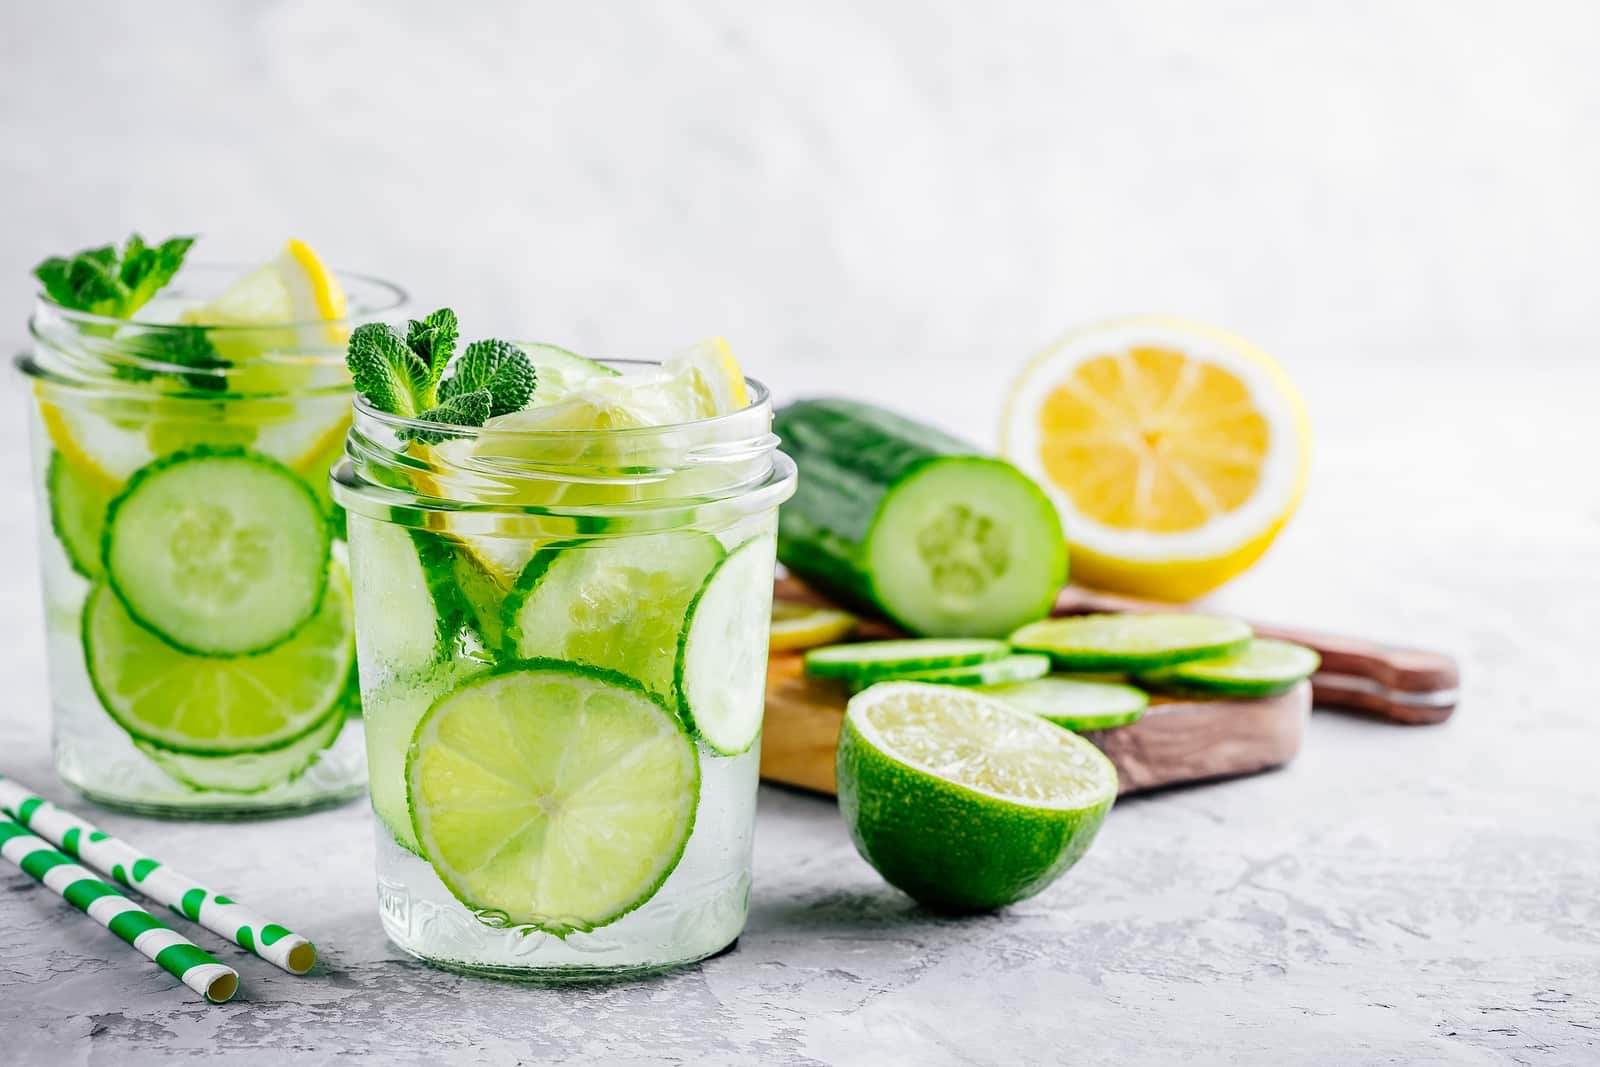 Lemon cucumber water to beat bloat after Thanksgiving